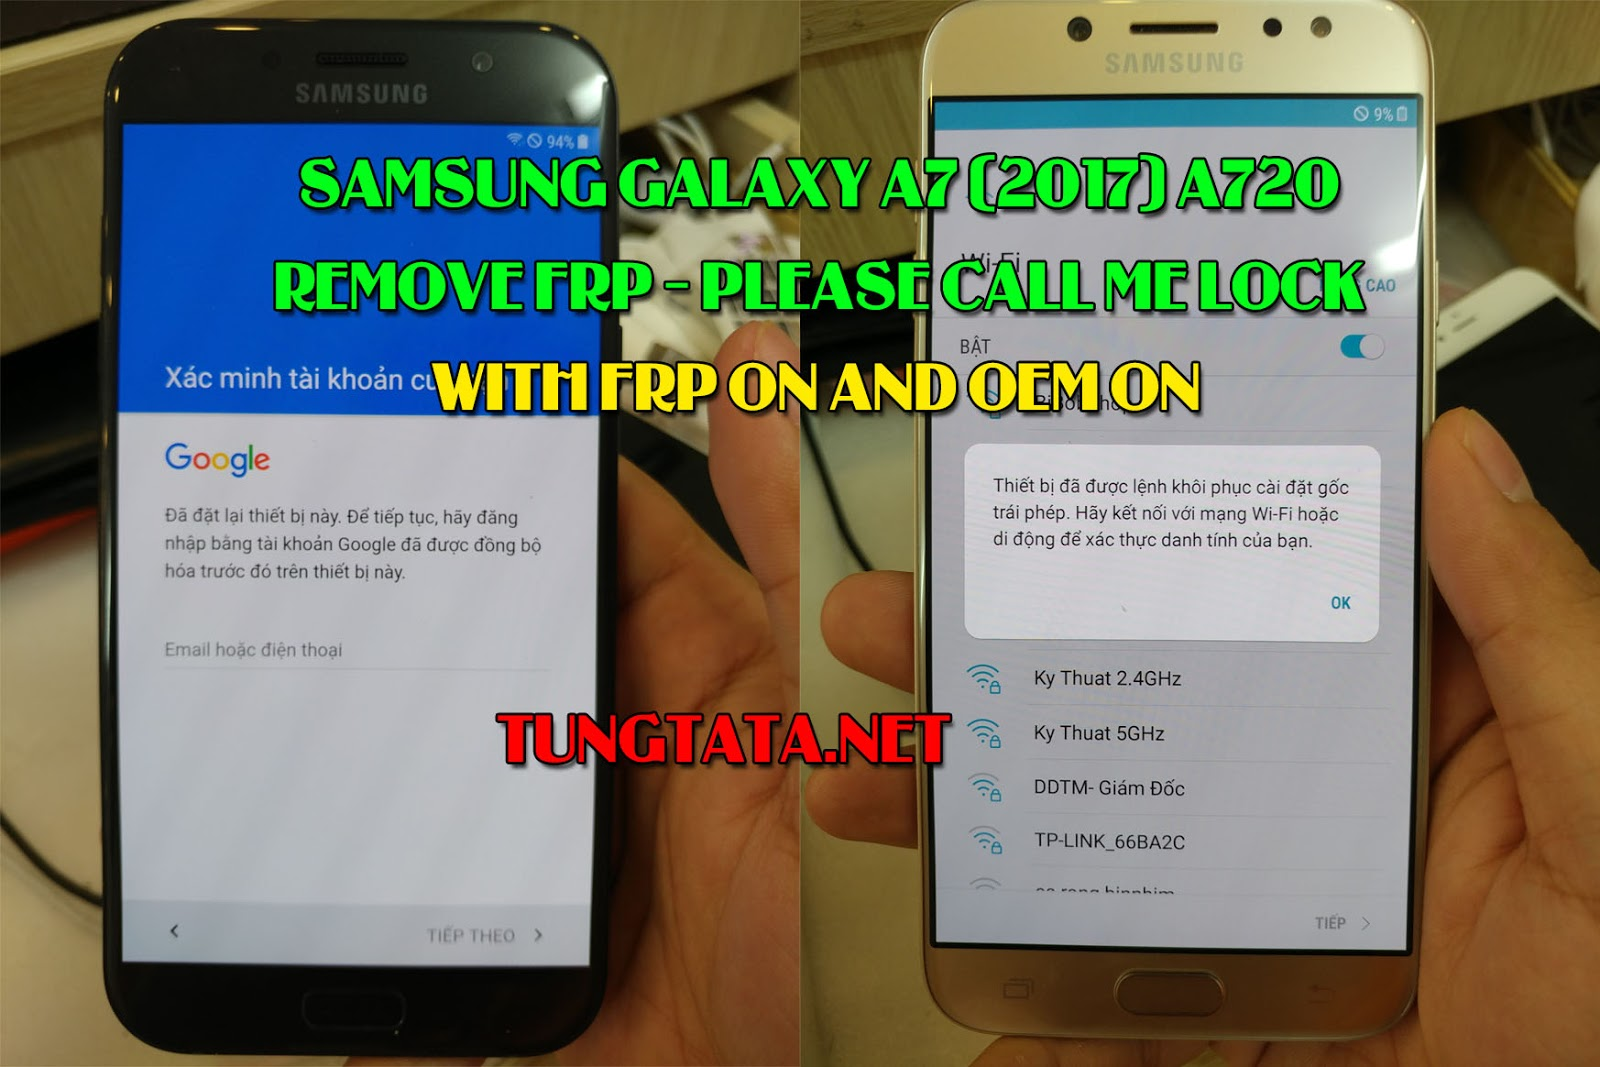 Samsung A7 2017 SM-A720S SM-A720L SM-A720K remove FRP lock, remove Please call me lock